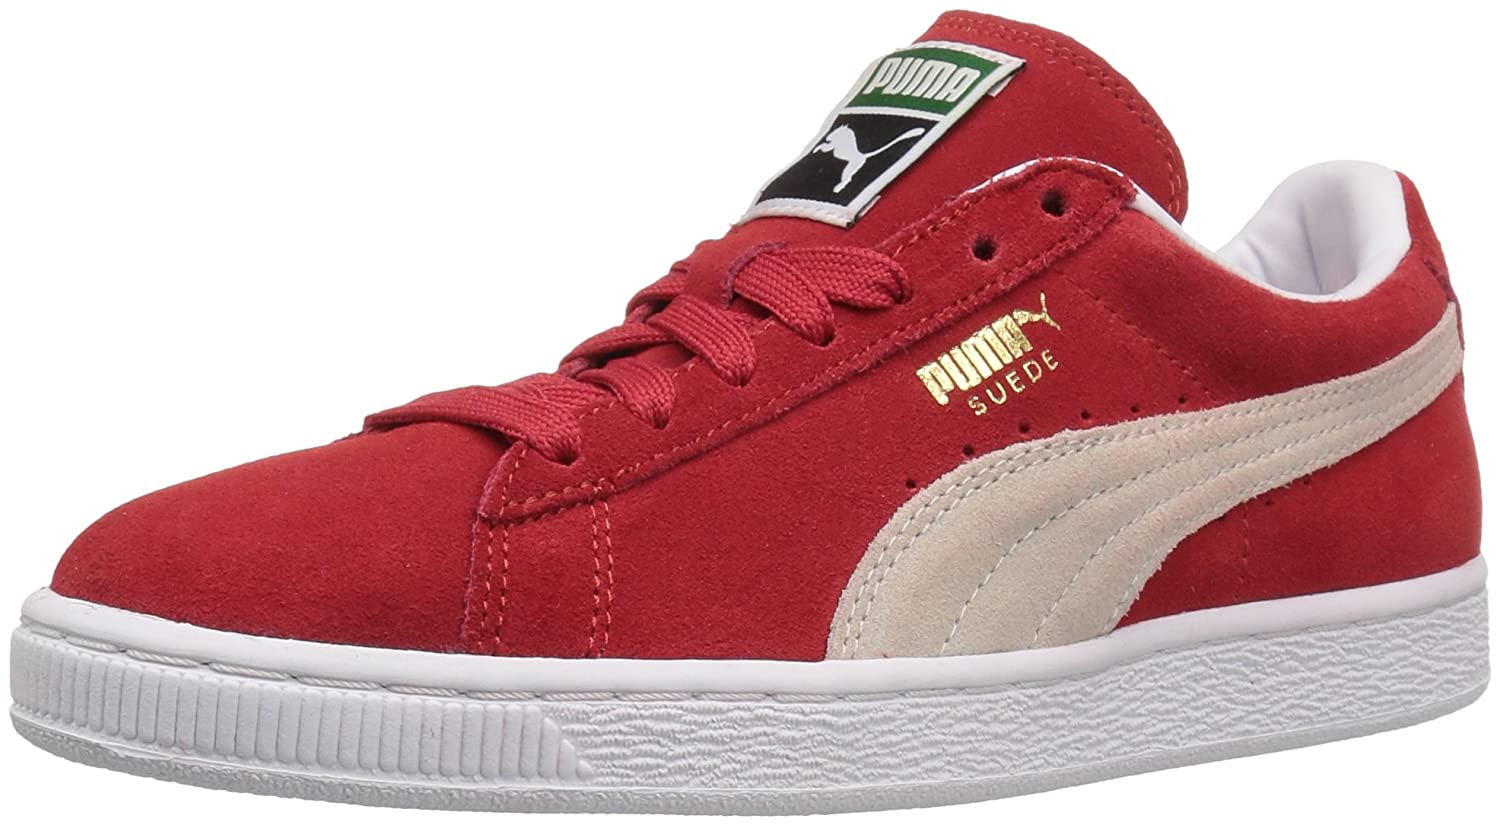 Puma Suede Classic, Zapatillas para Mujer 8.5 B(M) US|High Risk Red/White